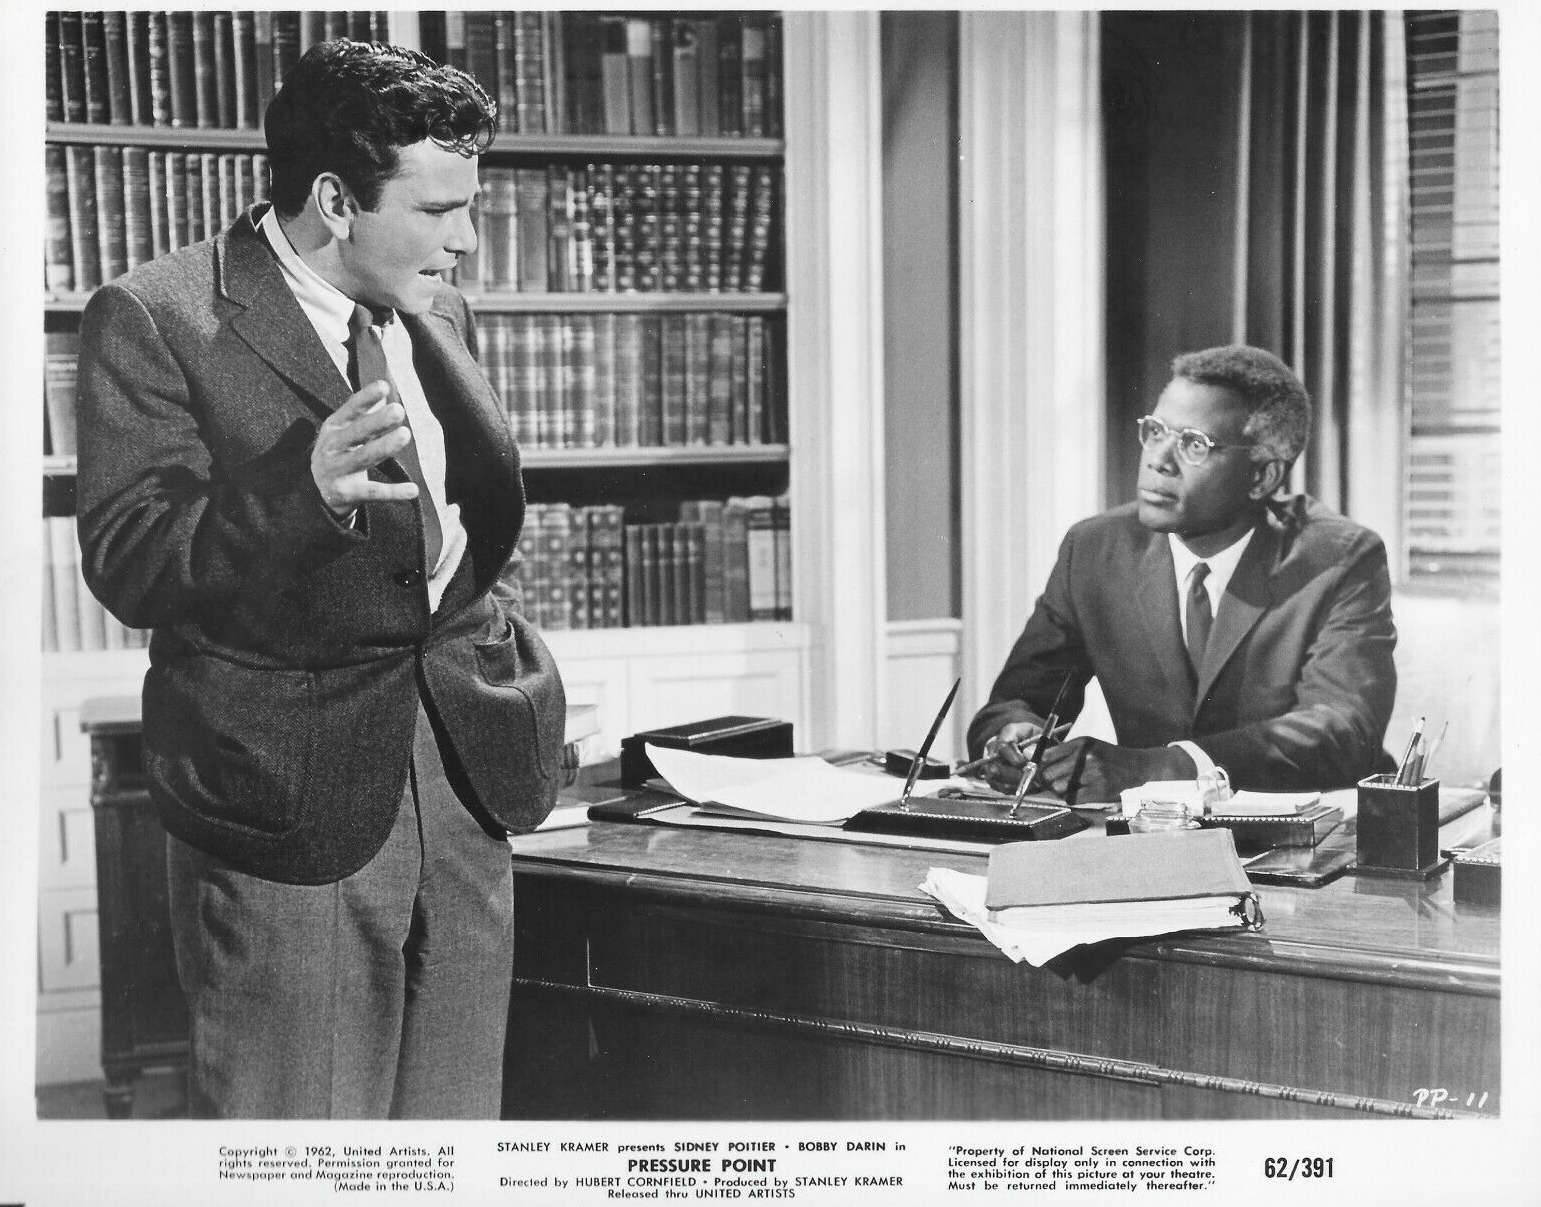 Peter Falk and Sidney Poitier in Pressure Point (1962)